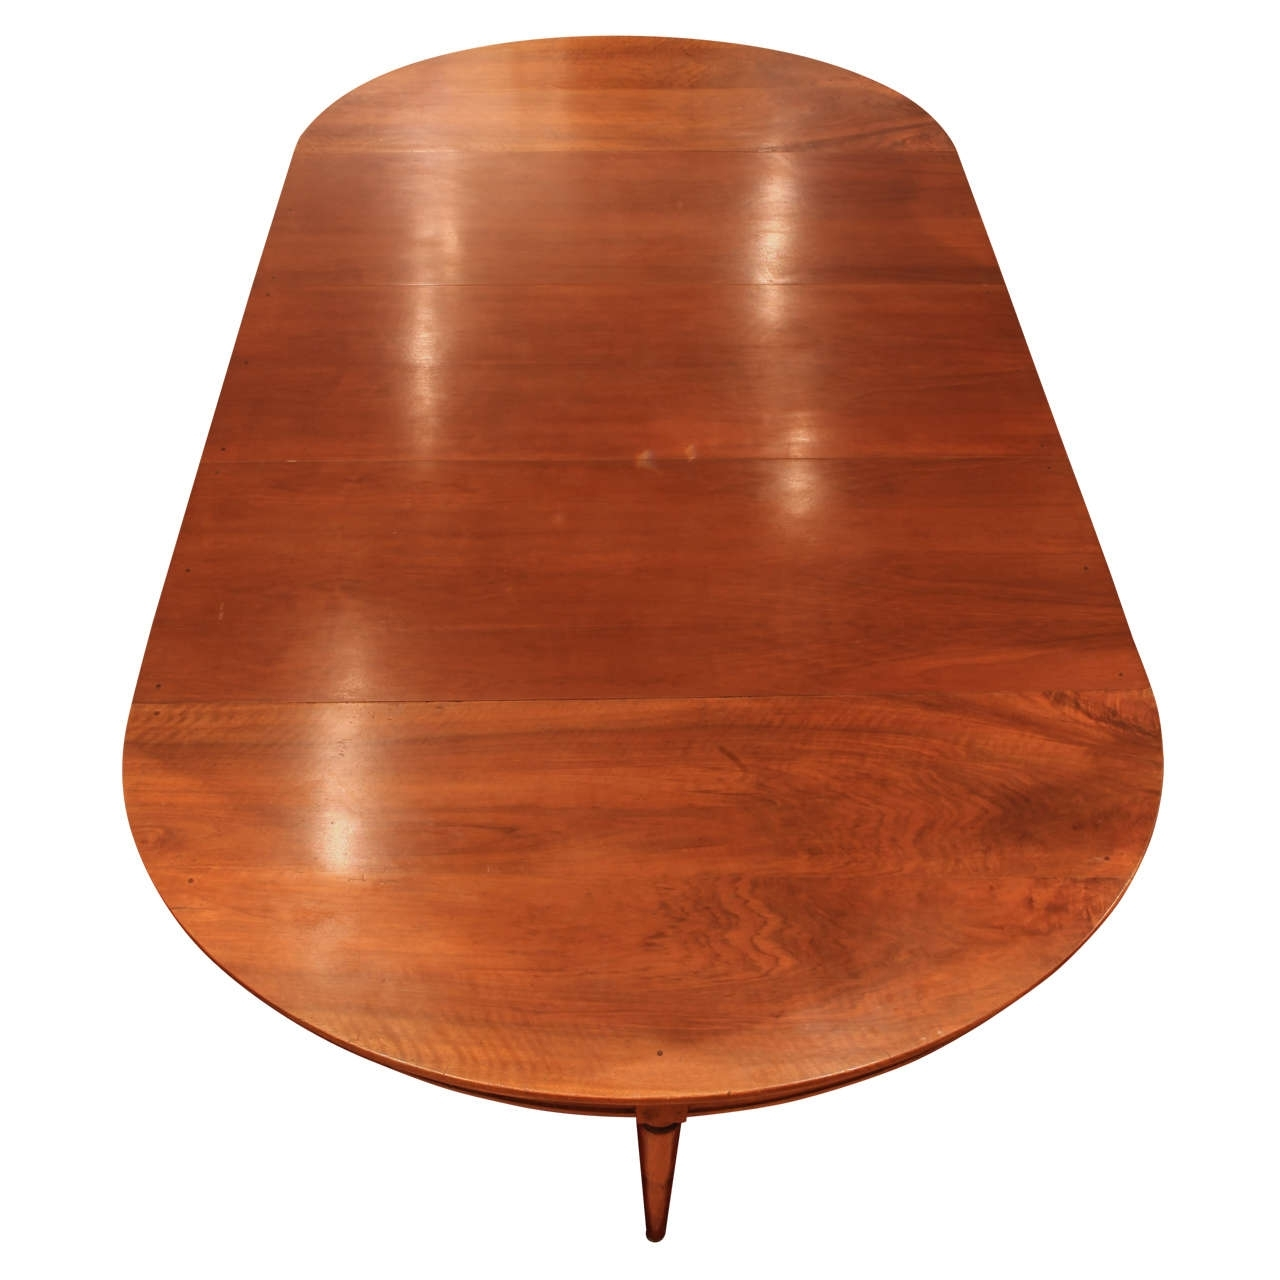 2017 18Th Century Irish Oval Dining Table For Sale At 1Stdibs In Oval Dining Tables For Sale (View 2 of 25)